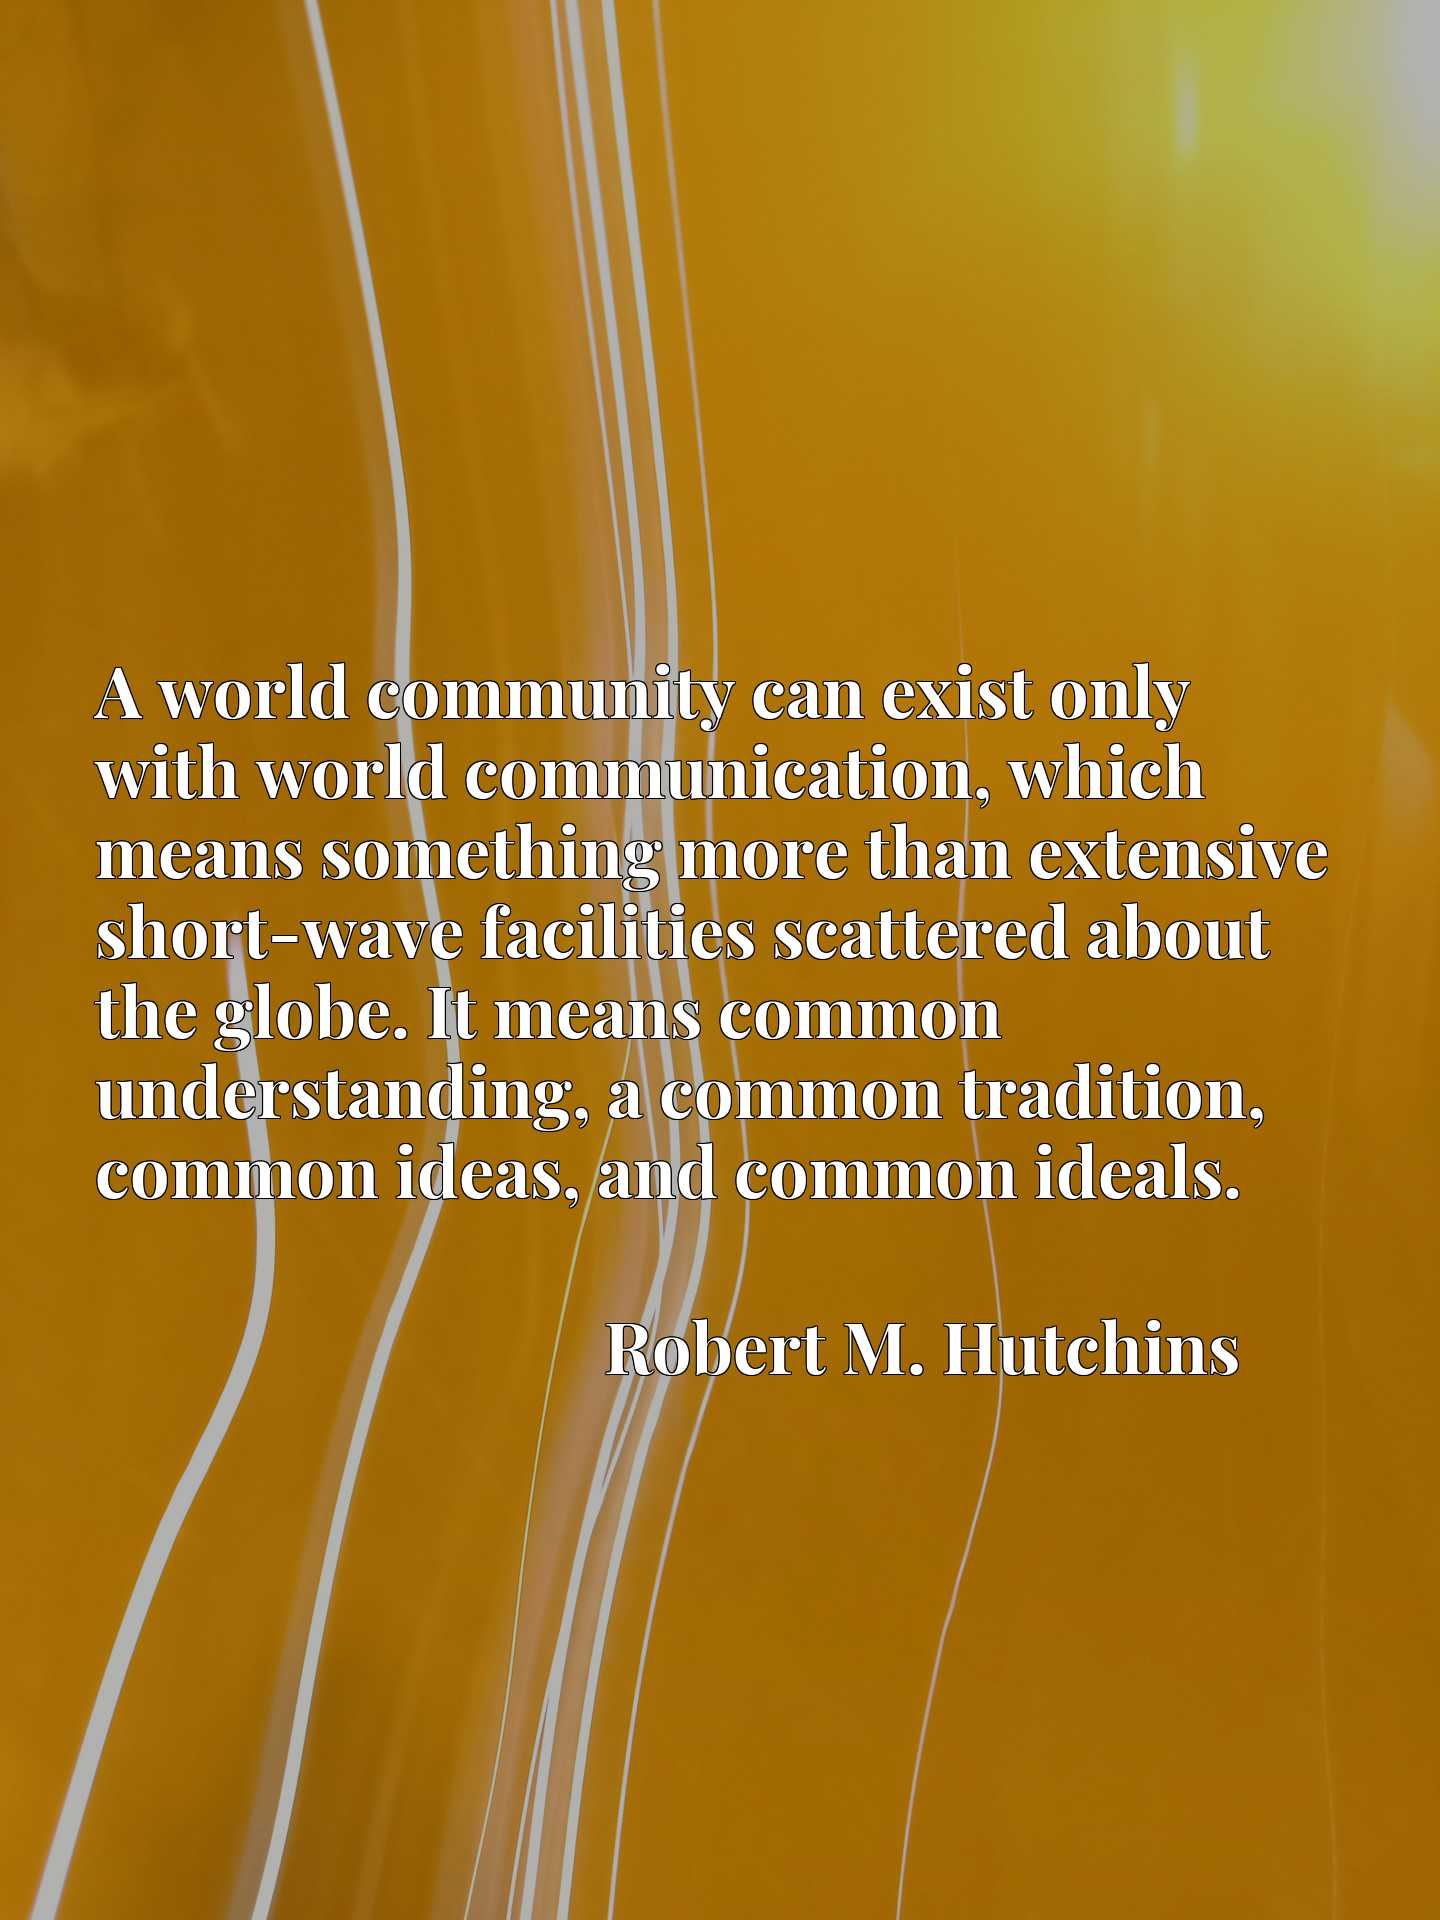 A world community can exist only with world communication, which means something more than extensive short-wave facilities scattered about the globe. It means common understanding, a common tradition, common ideas, and common ideals.